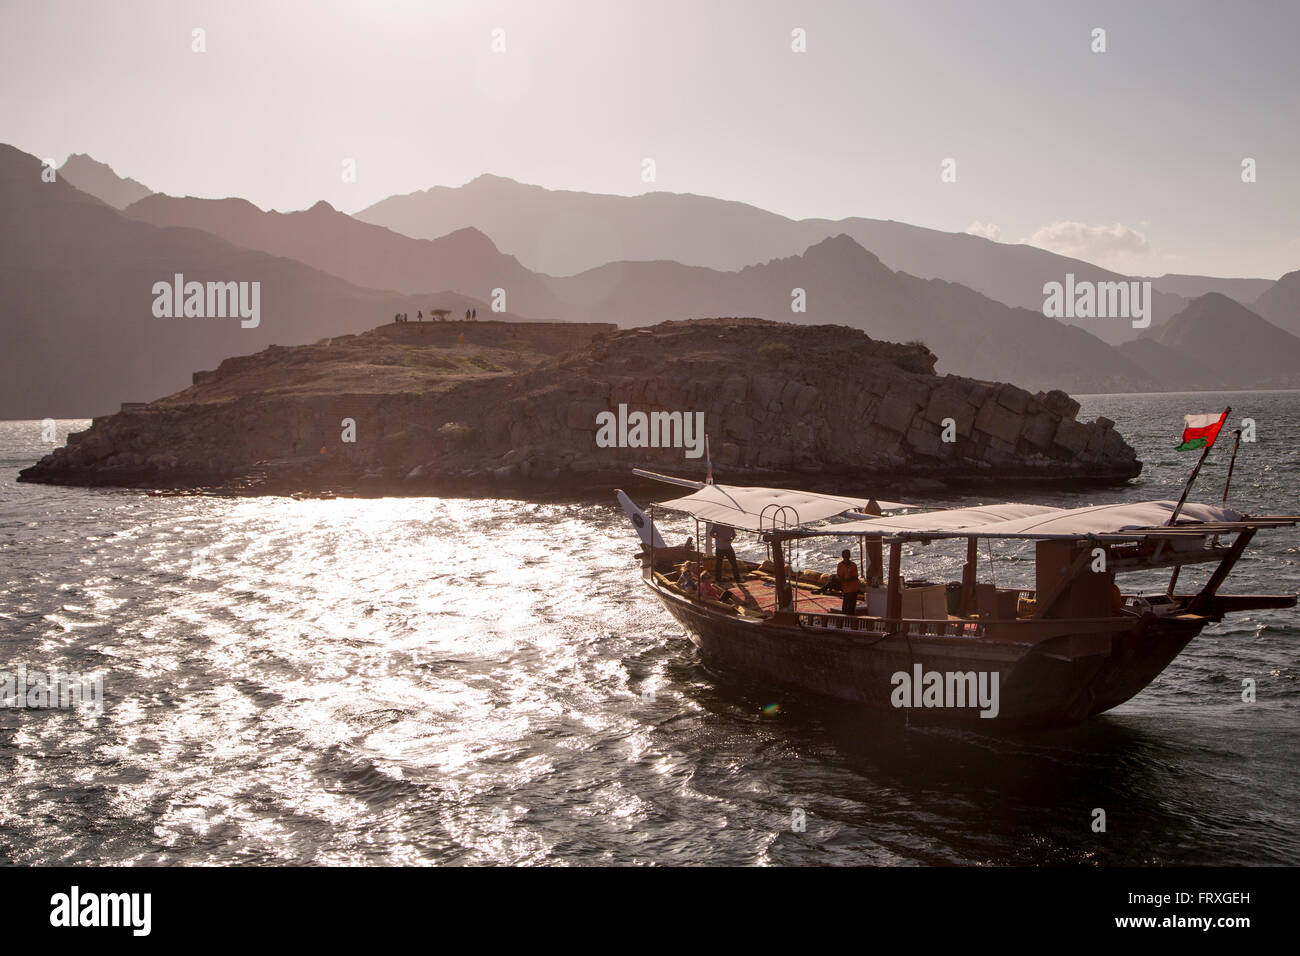 Traditional dhow boat excursion to Telegraph Island in the fjord of Musandam Peninsula, near Khasab, Oman - Stock Image